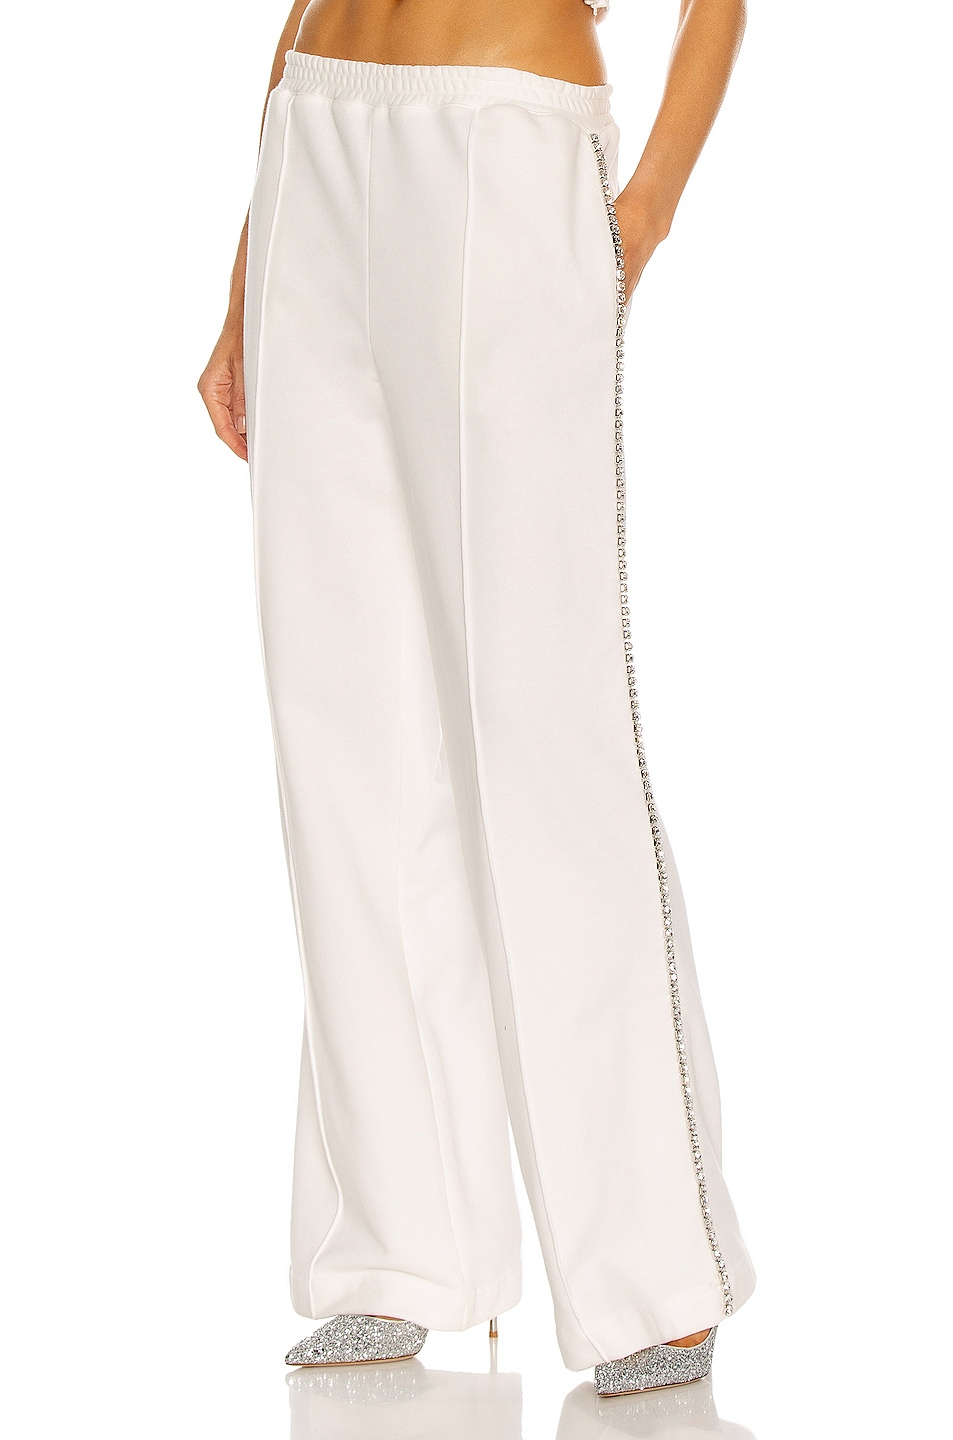 Image 1 of AREA Crystal Stitched Track Pant in White